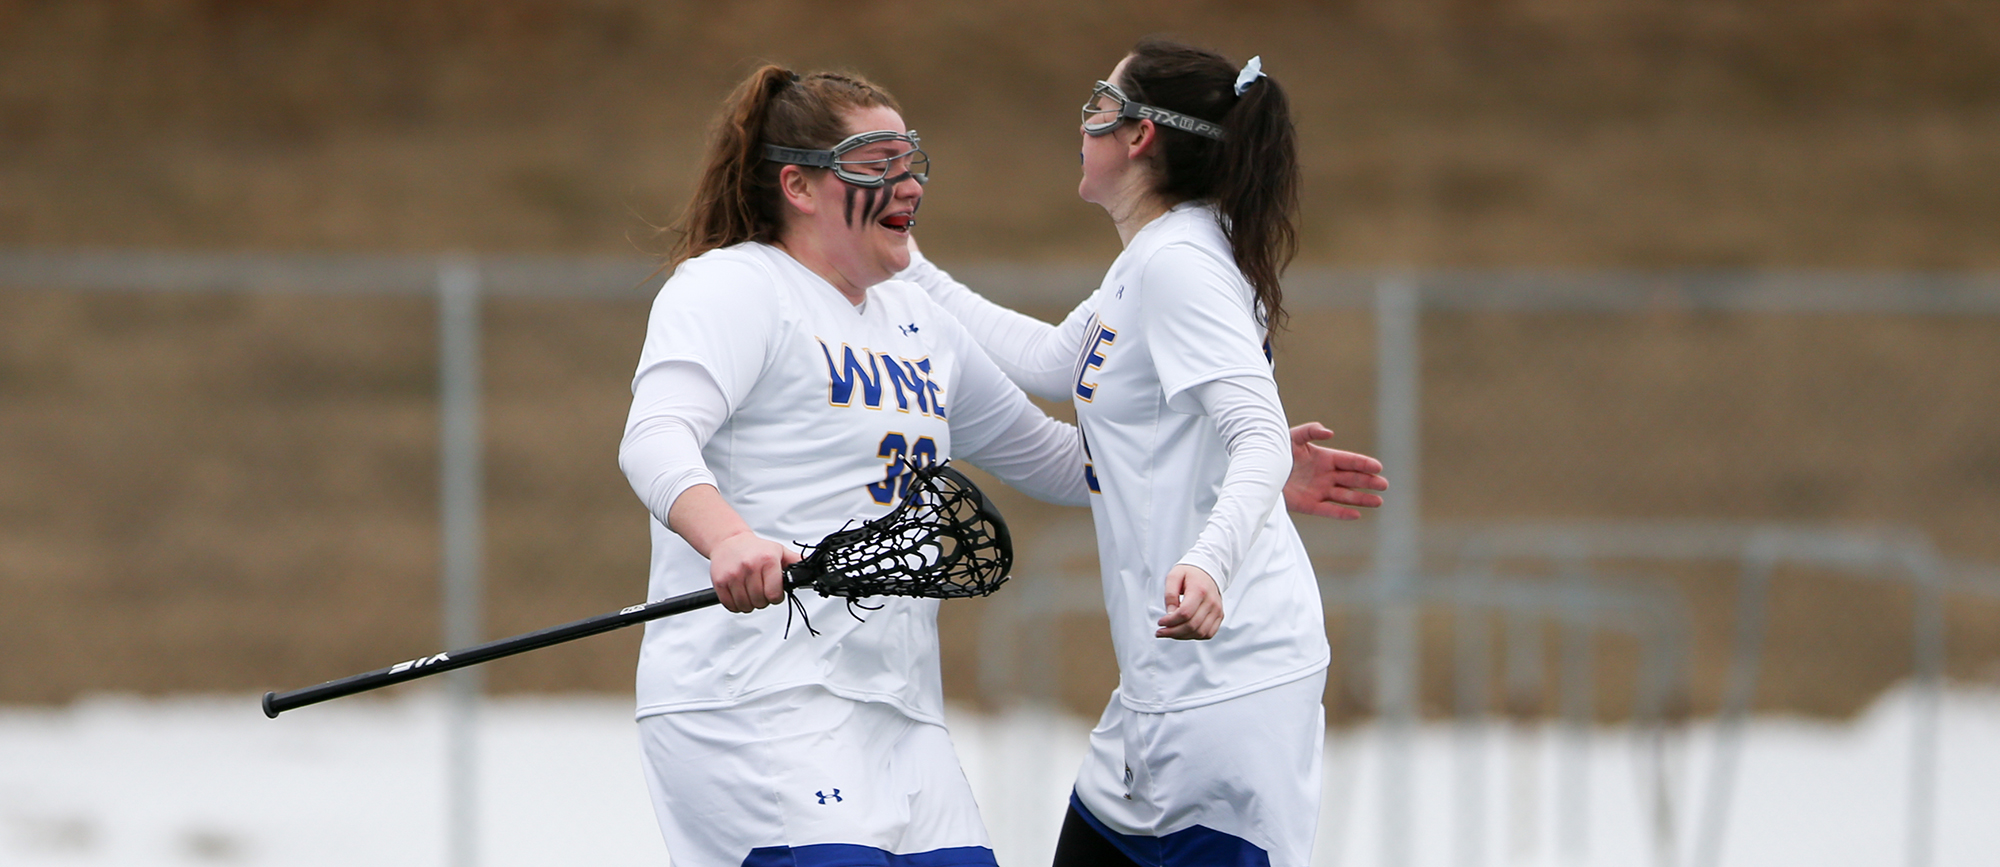 Eileen Ruby and Kristen Breen led the Western New England offense on Wednesday as the Golden Bears capped their regular season with a 20-12 win over Salve Regina. (Photo by Chris Marion)